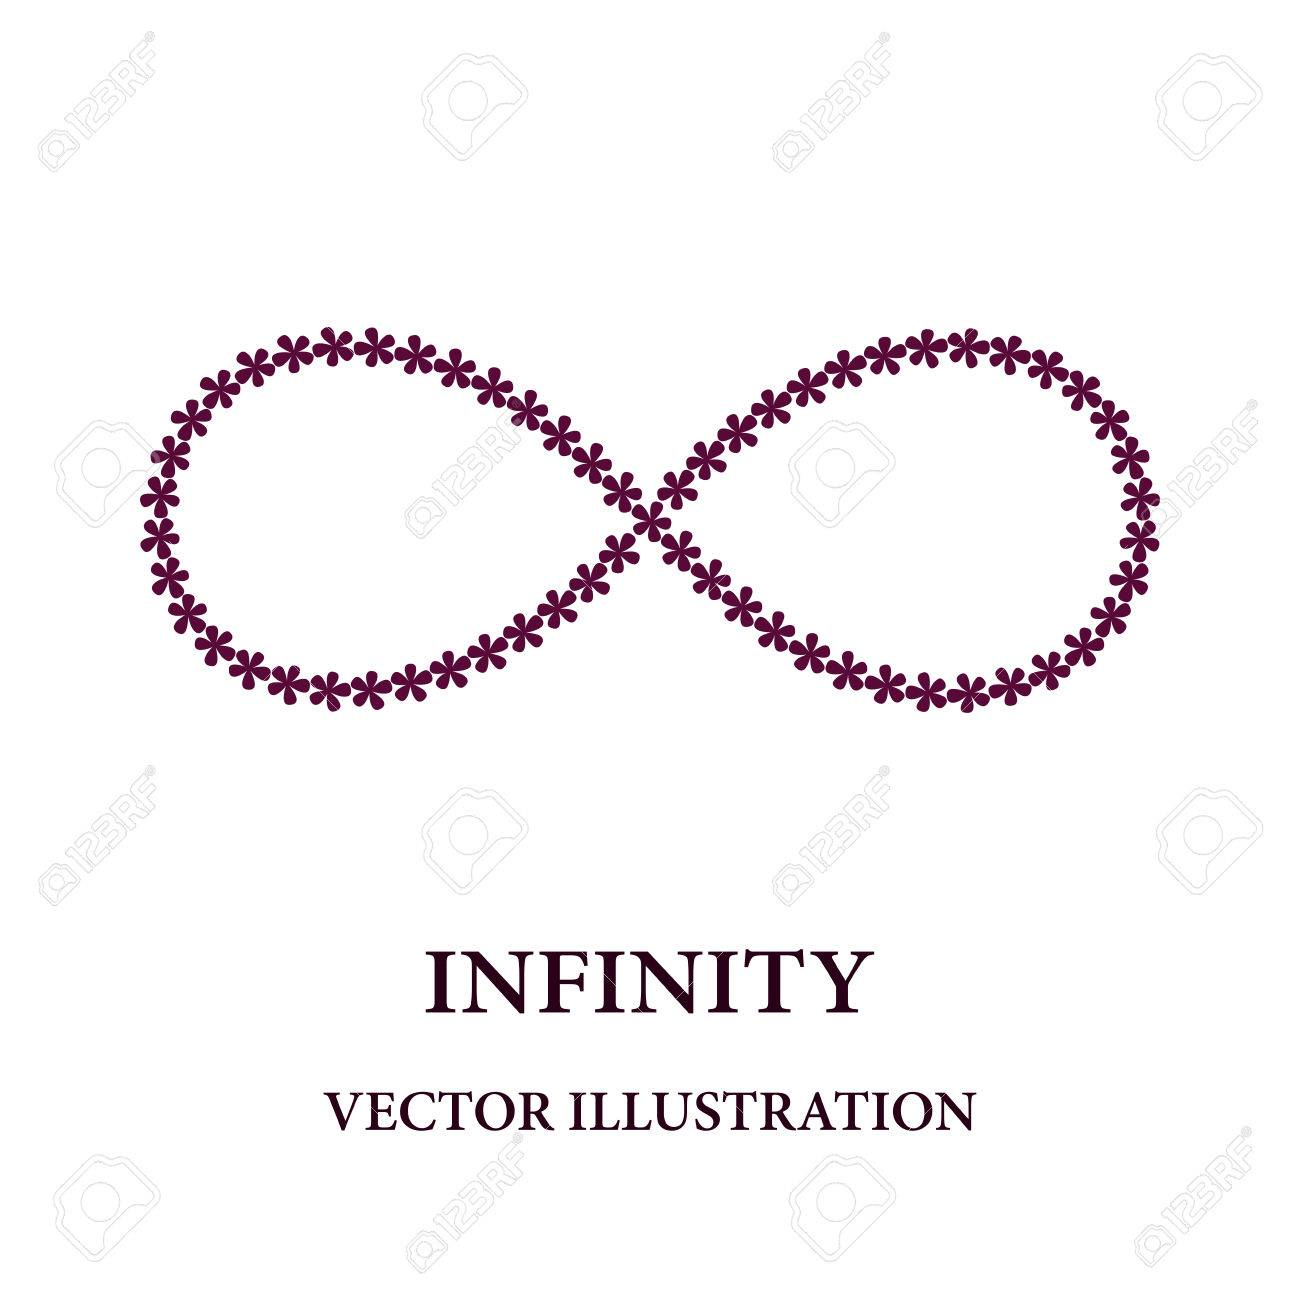 Abstract infinity symbol consisted of little flowers royalty free abstract infinity symbol consisted of little flowers stock vector 62188606 buycottarizona